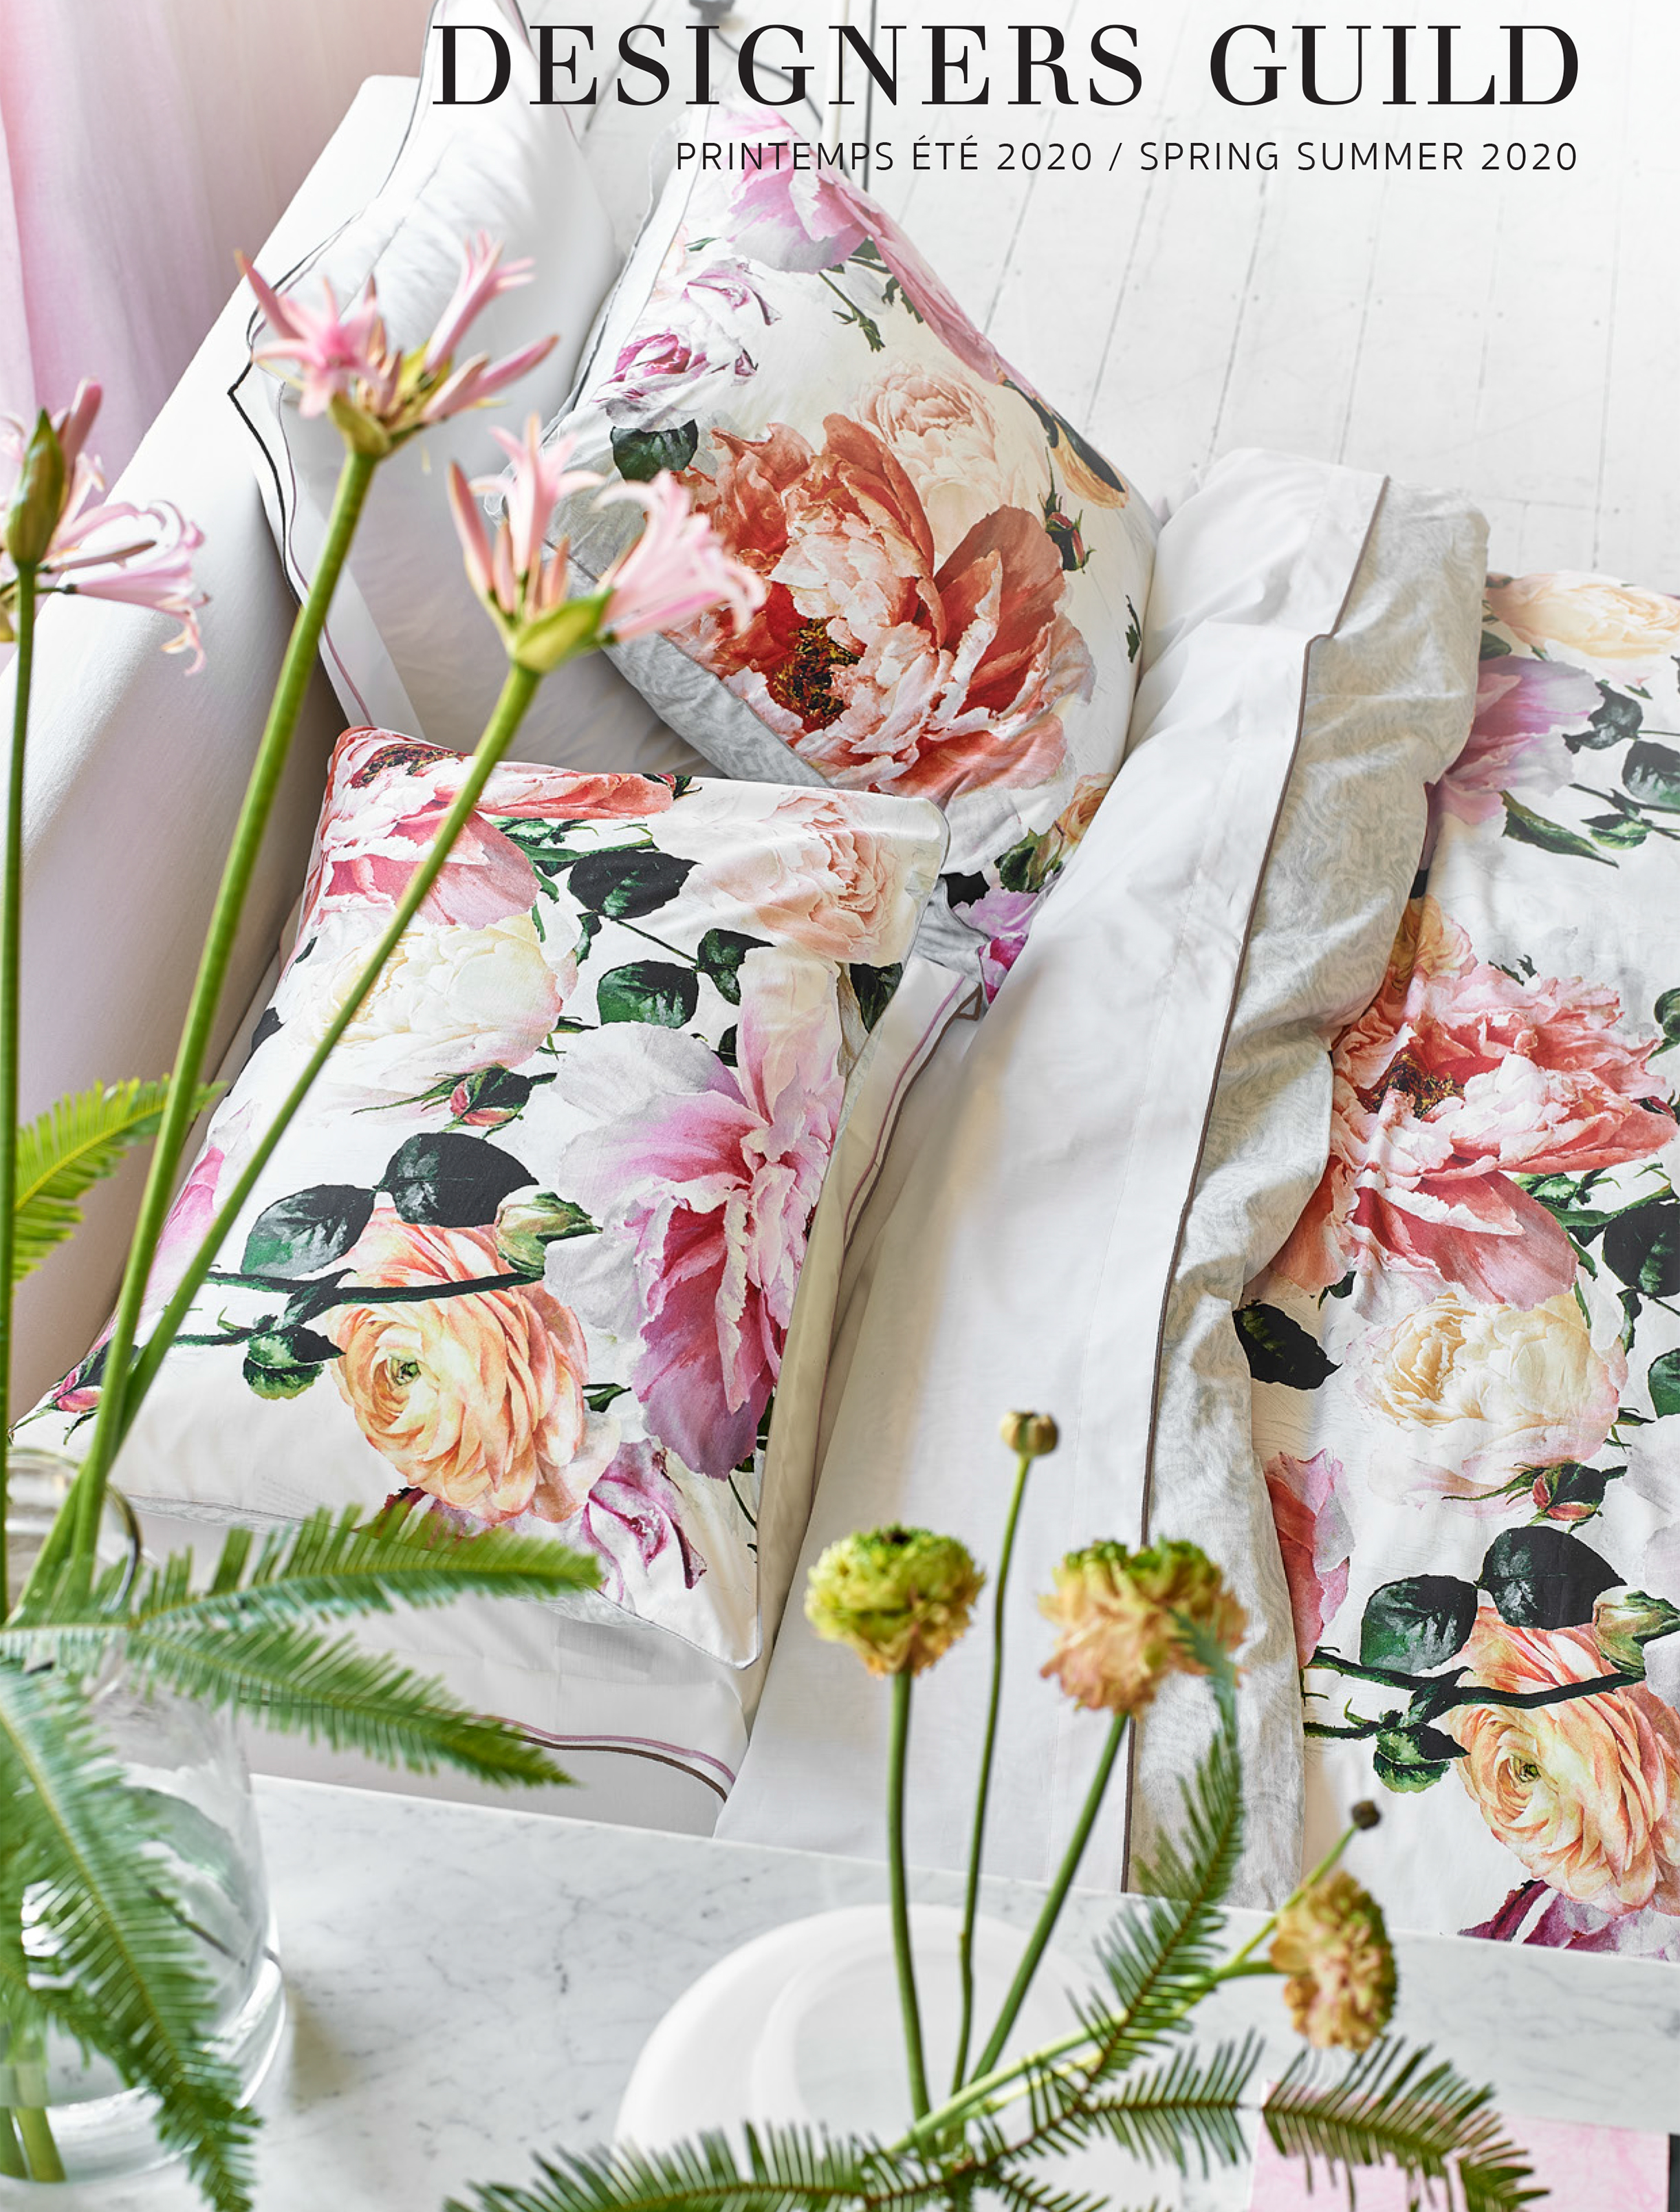 DESIGNERS GUILD FABRIC & WALLPAPER AUTUMN/WINTER 2019